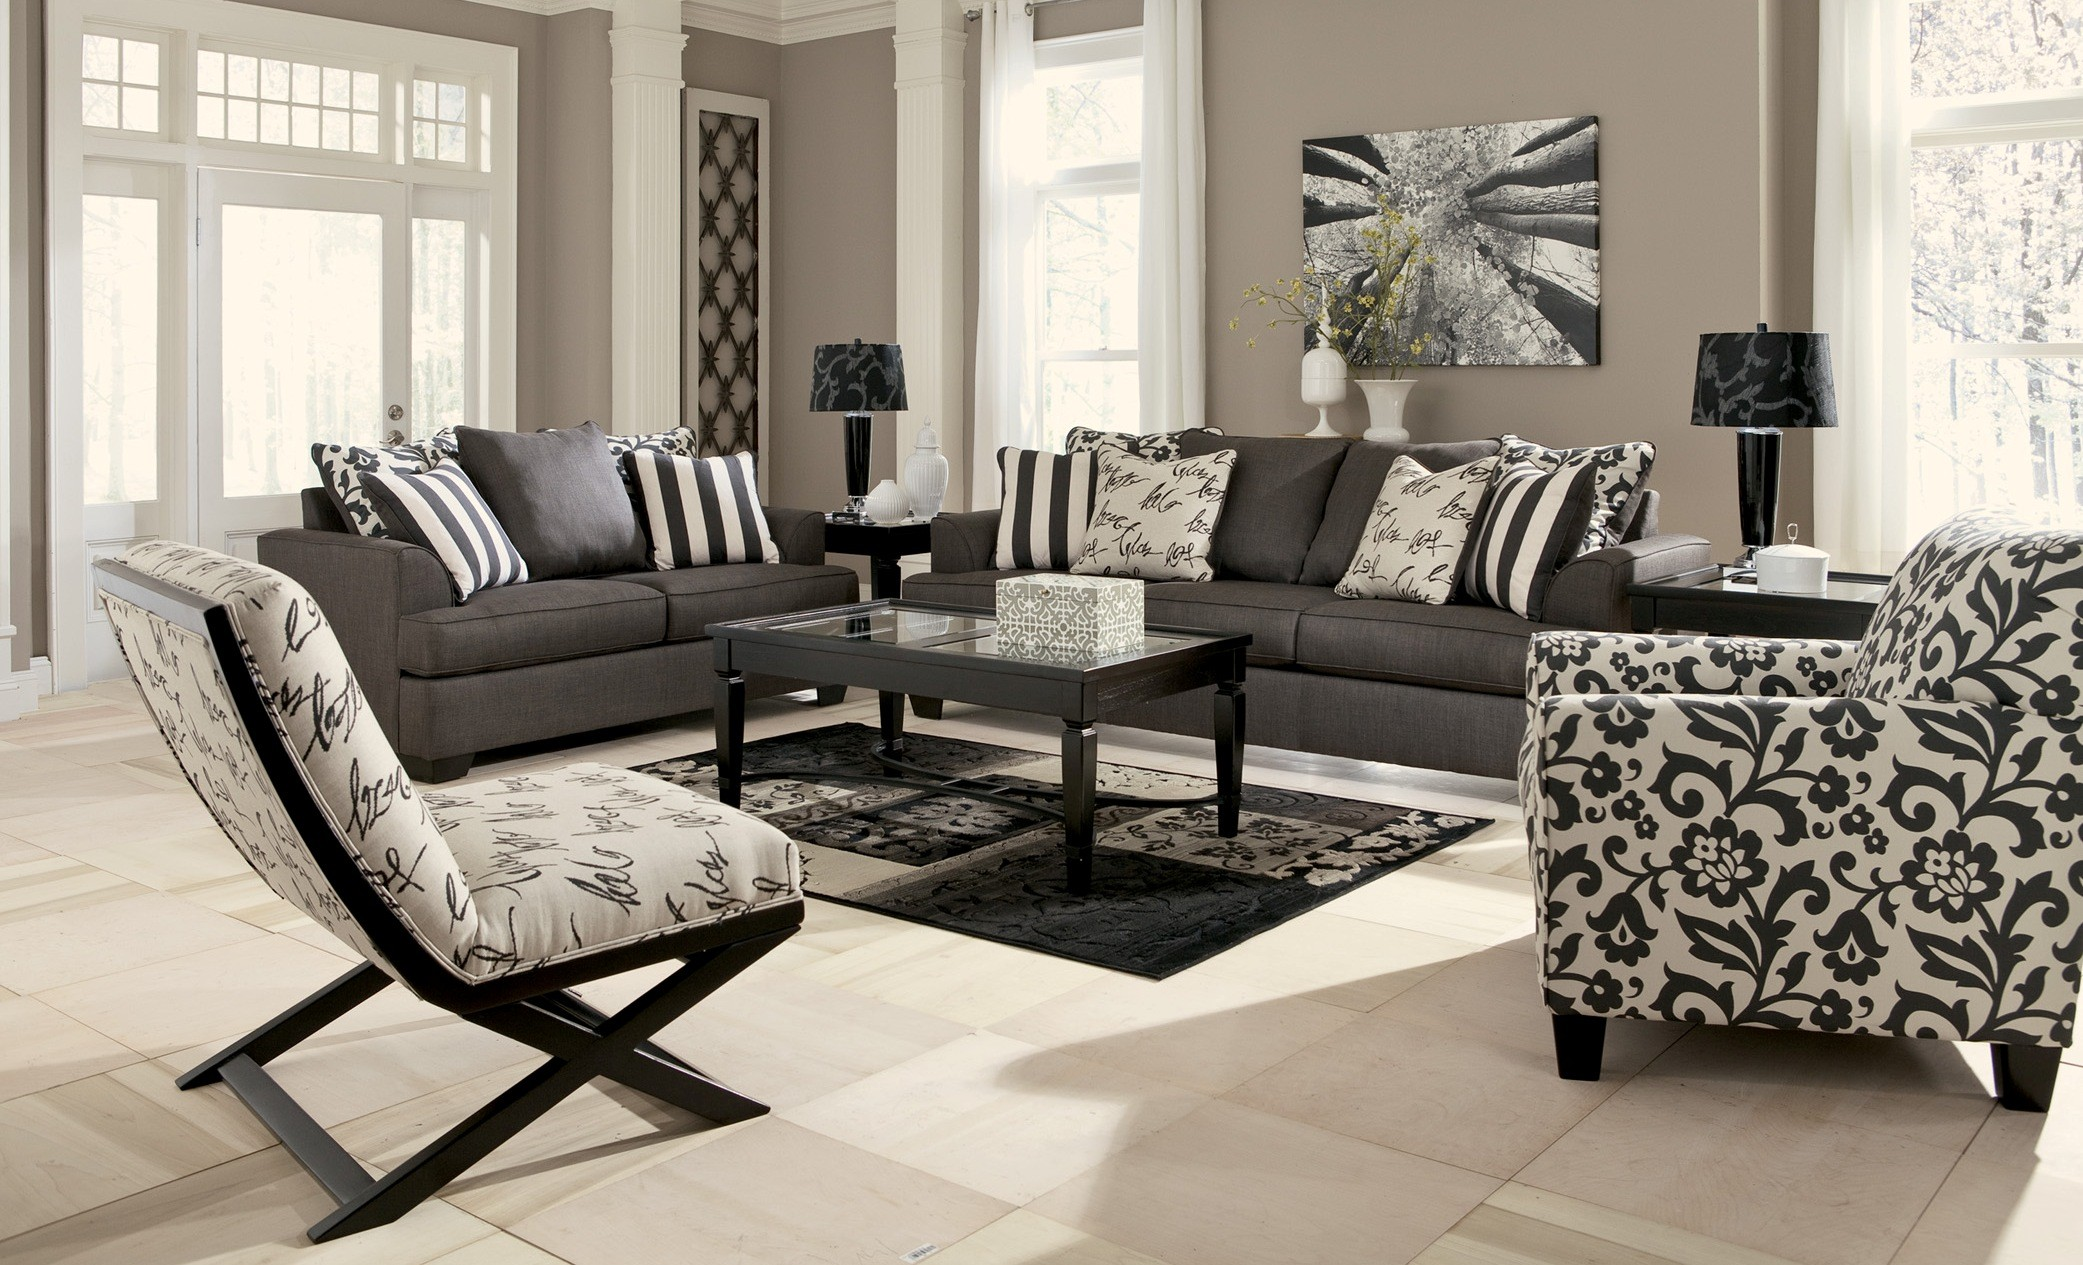 ashley living room furniture. Simple Furniture To Ashley Living Room Furniture